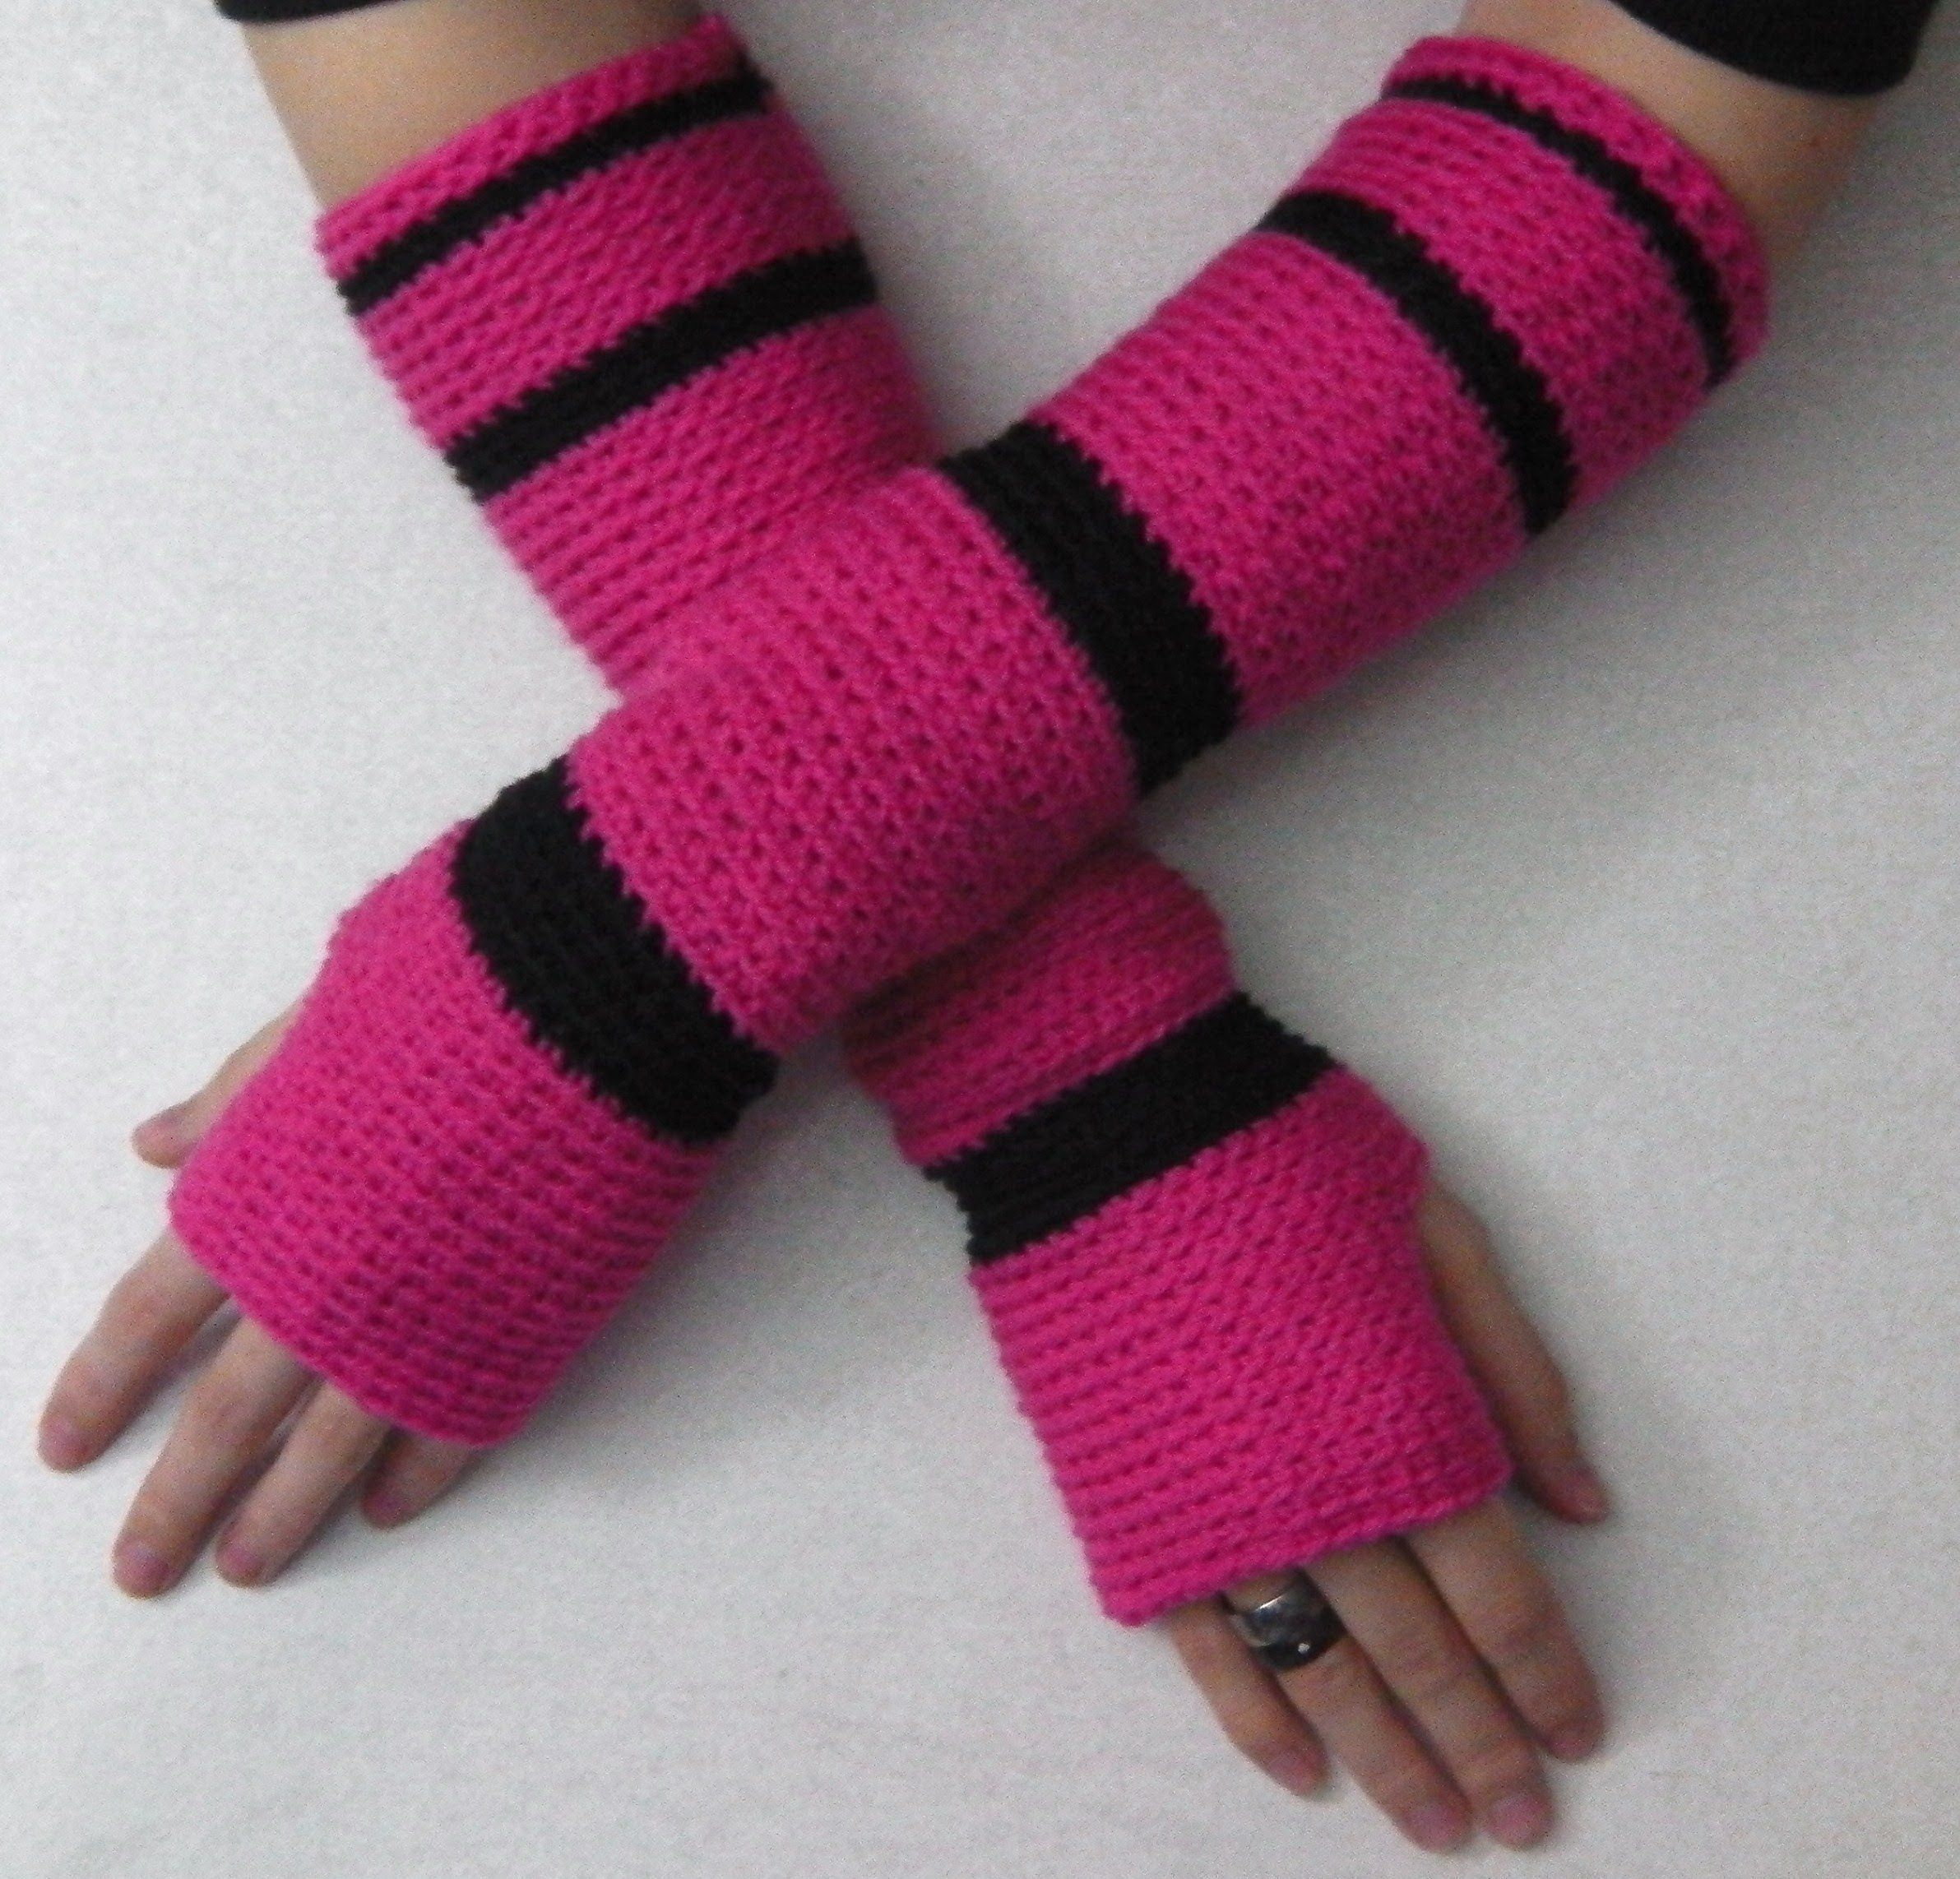 Crochet tutorial: hand arm cuffs sleeves gauntlets | Let\'s Crochet ...